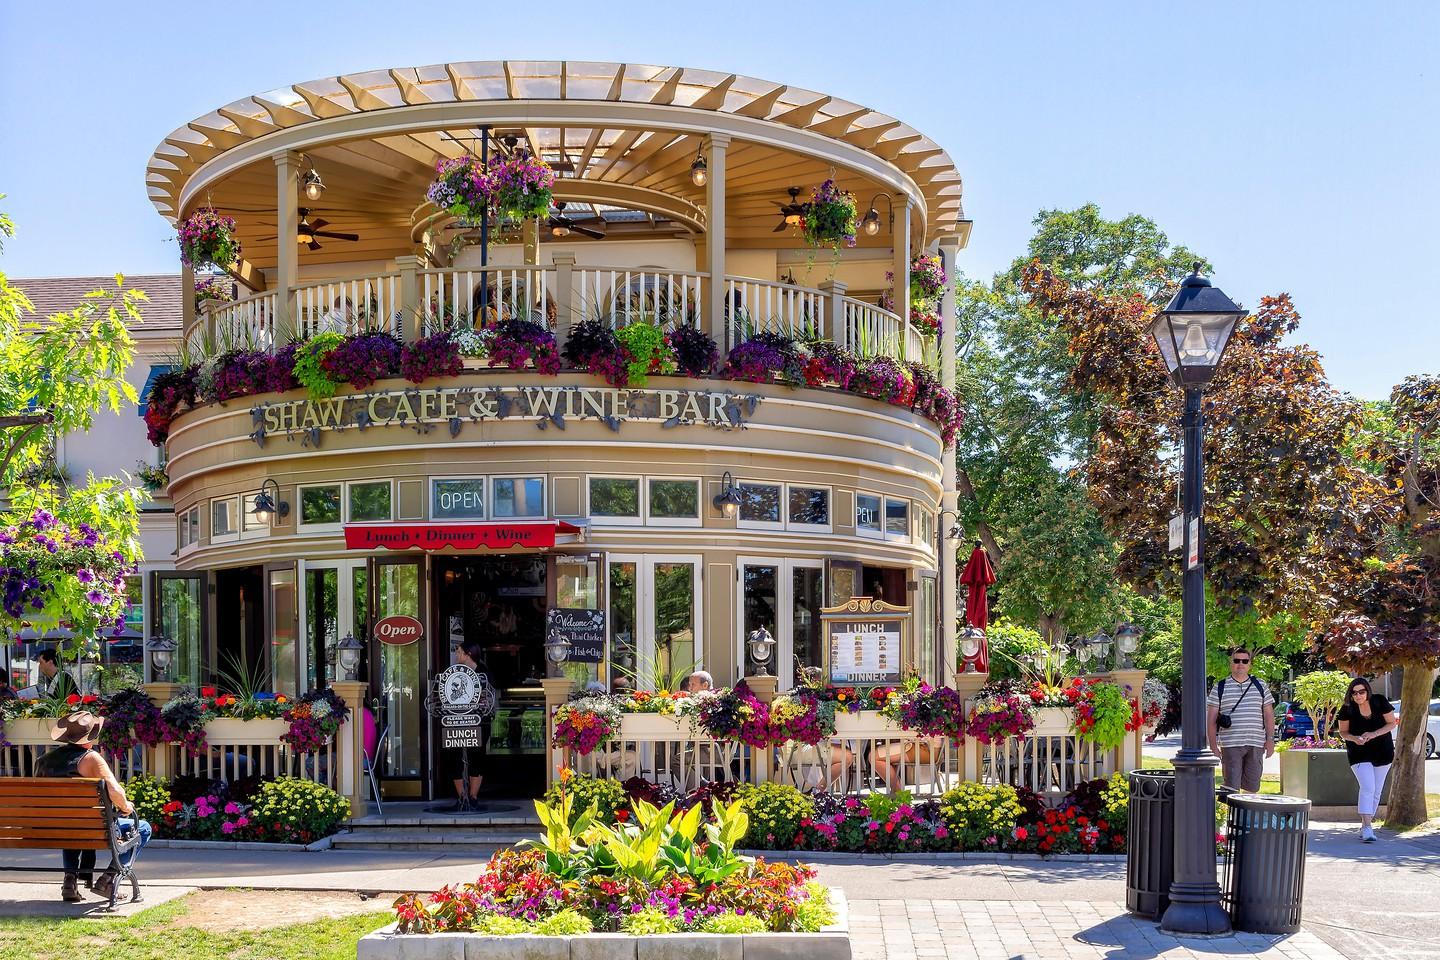 Niagara-on-the-lake, Ontatio, Canada - June 14, 2018: A famous restaurant, located in the Queen Street, is a fine wine bar and cafe, full of colors.